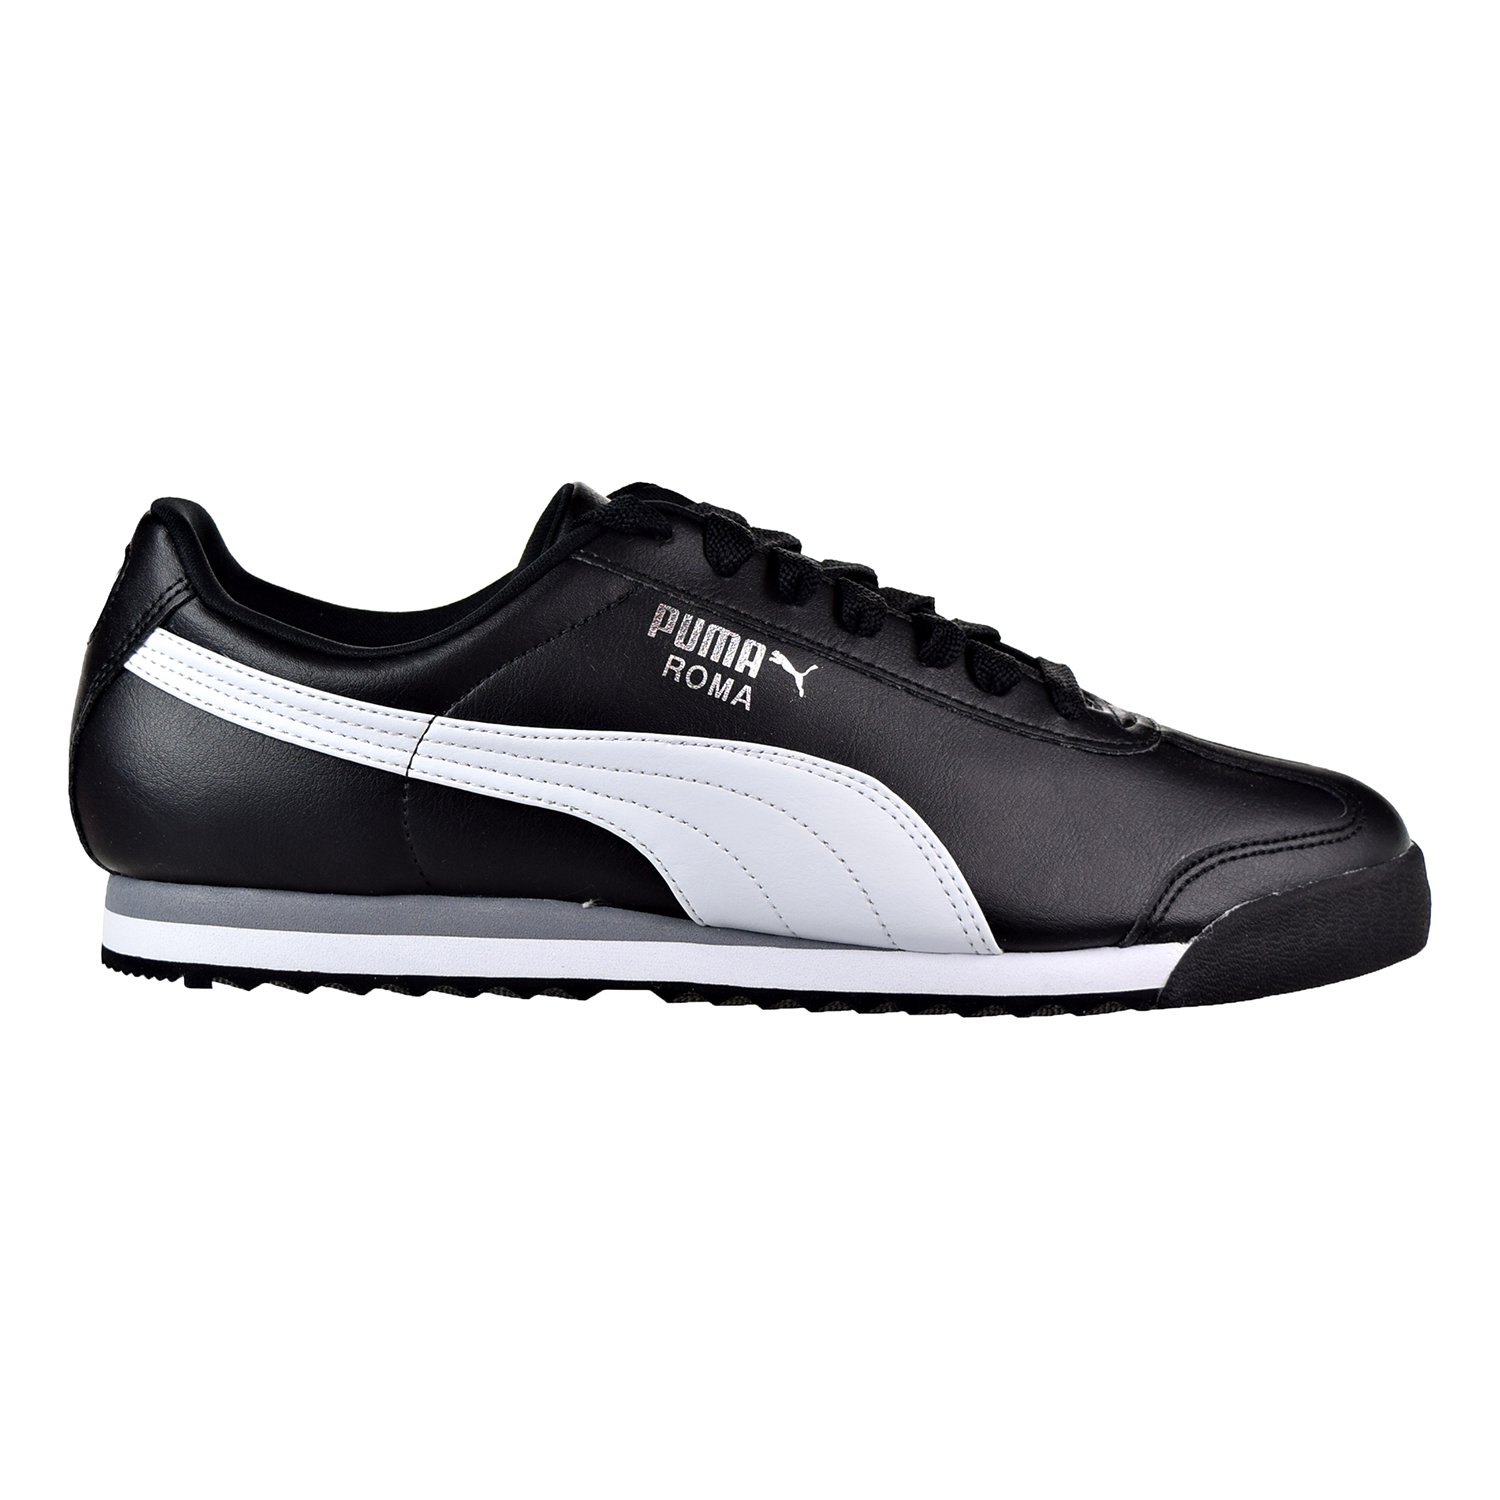 1b08ed1f27ec73 Buy Puma Roma Basic Men s Shoes Black-White-Puma Sliver 353572-11 ...